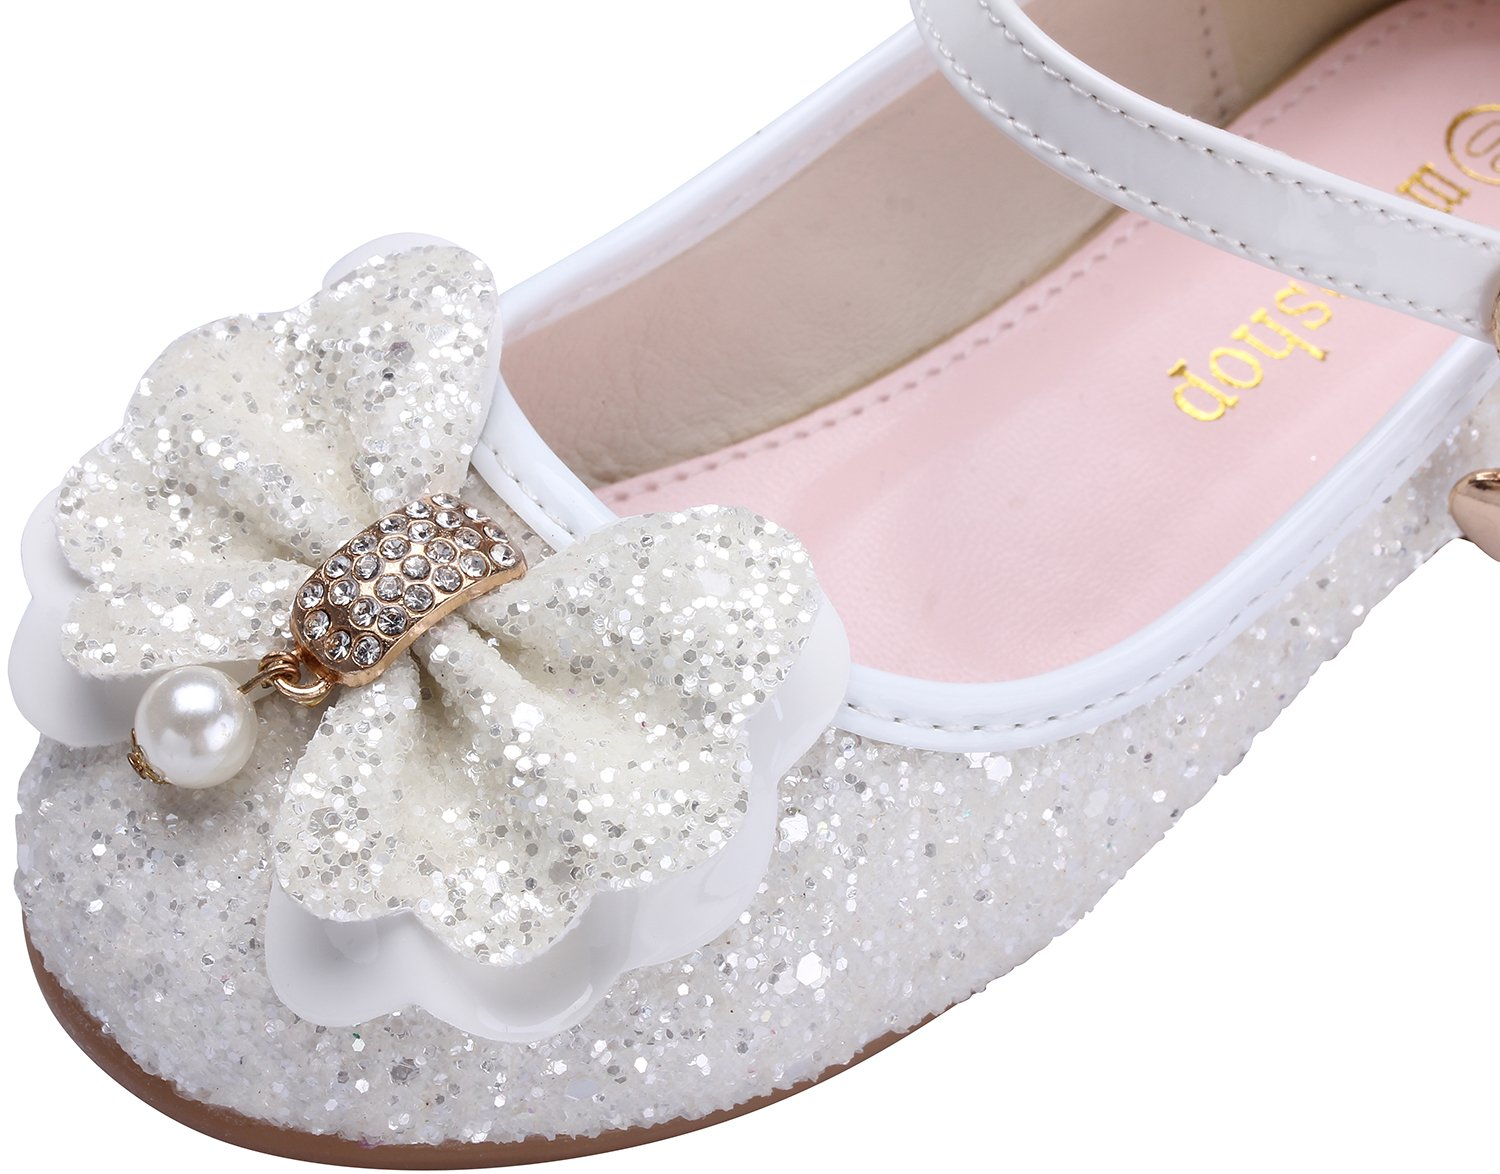 miaoshop Flower Girls Dress Ballet Flats Casual School Mary Jane Glitter Bow Shoes (10 M US Toddler, White) by miaoshop (Image #6)